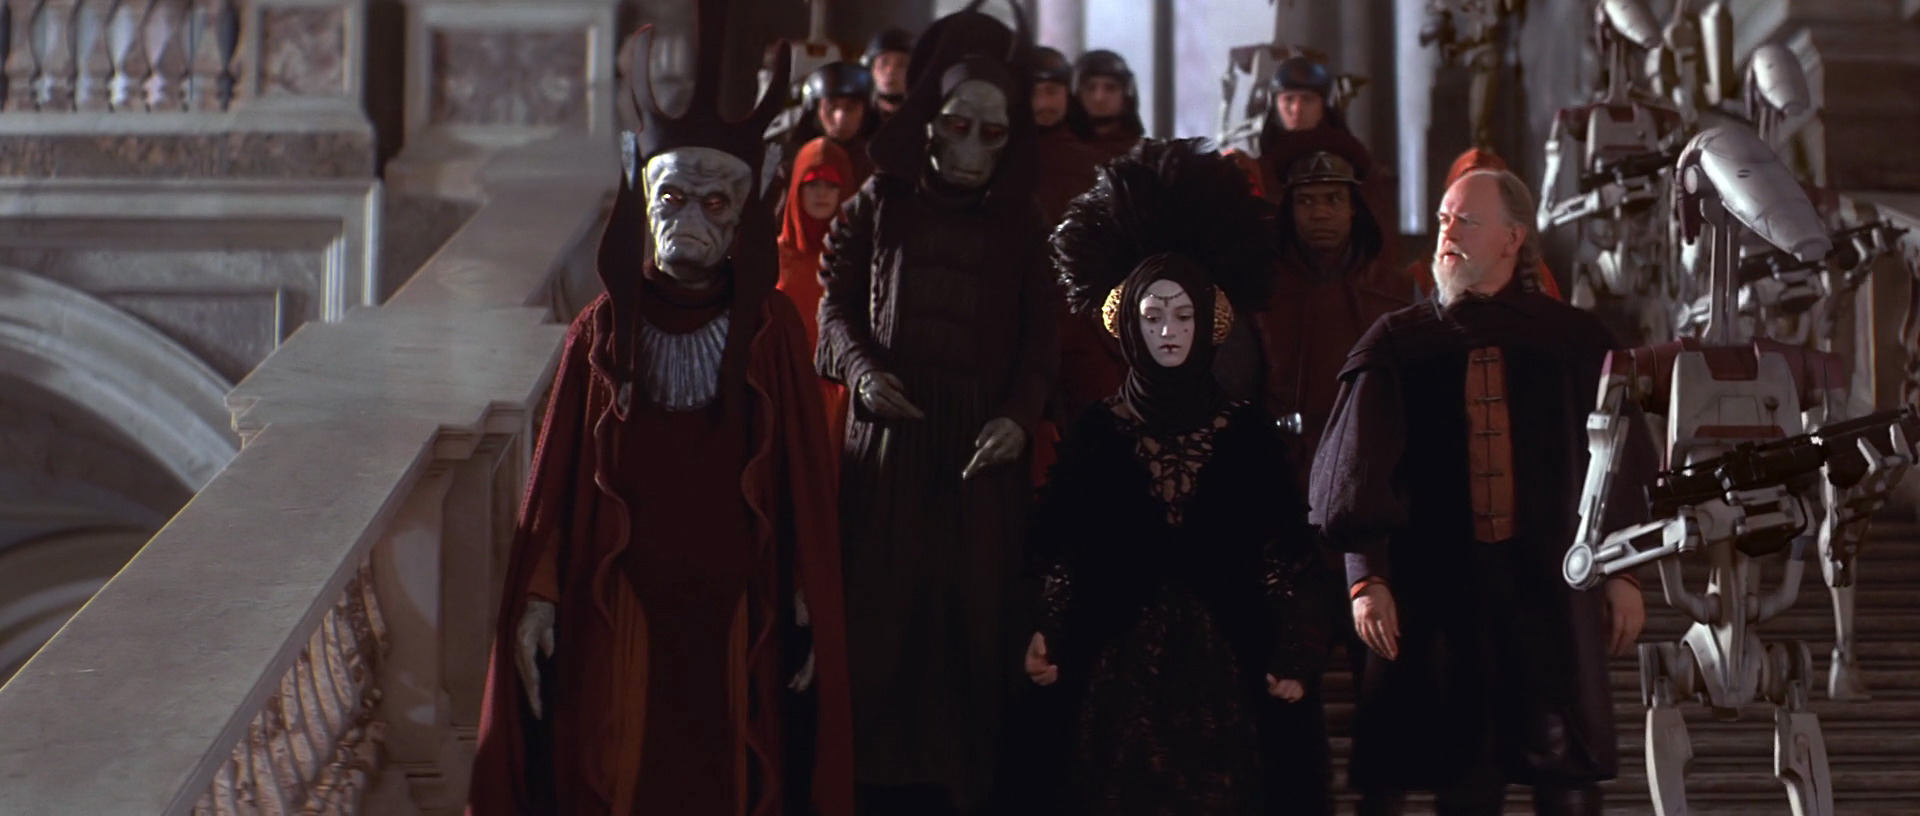 starwars1-movie-screencaps.com-2392